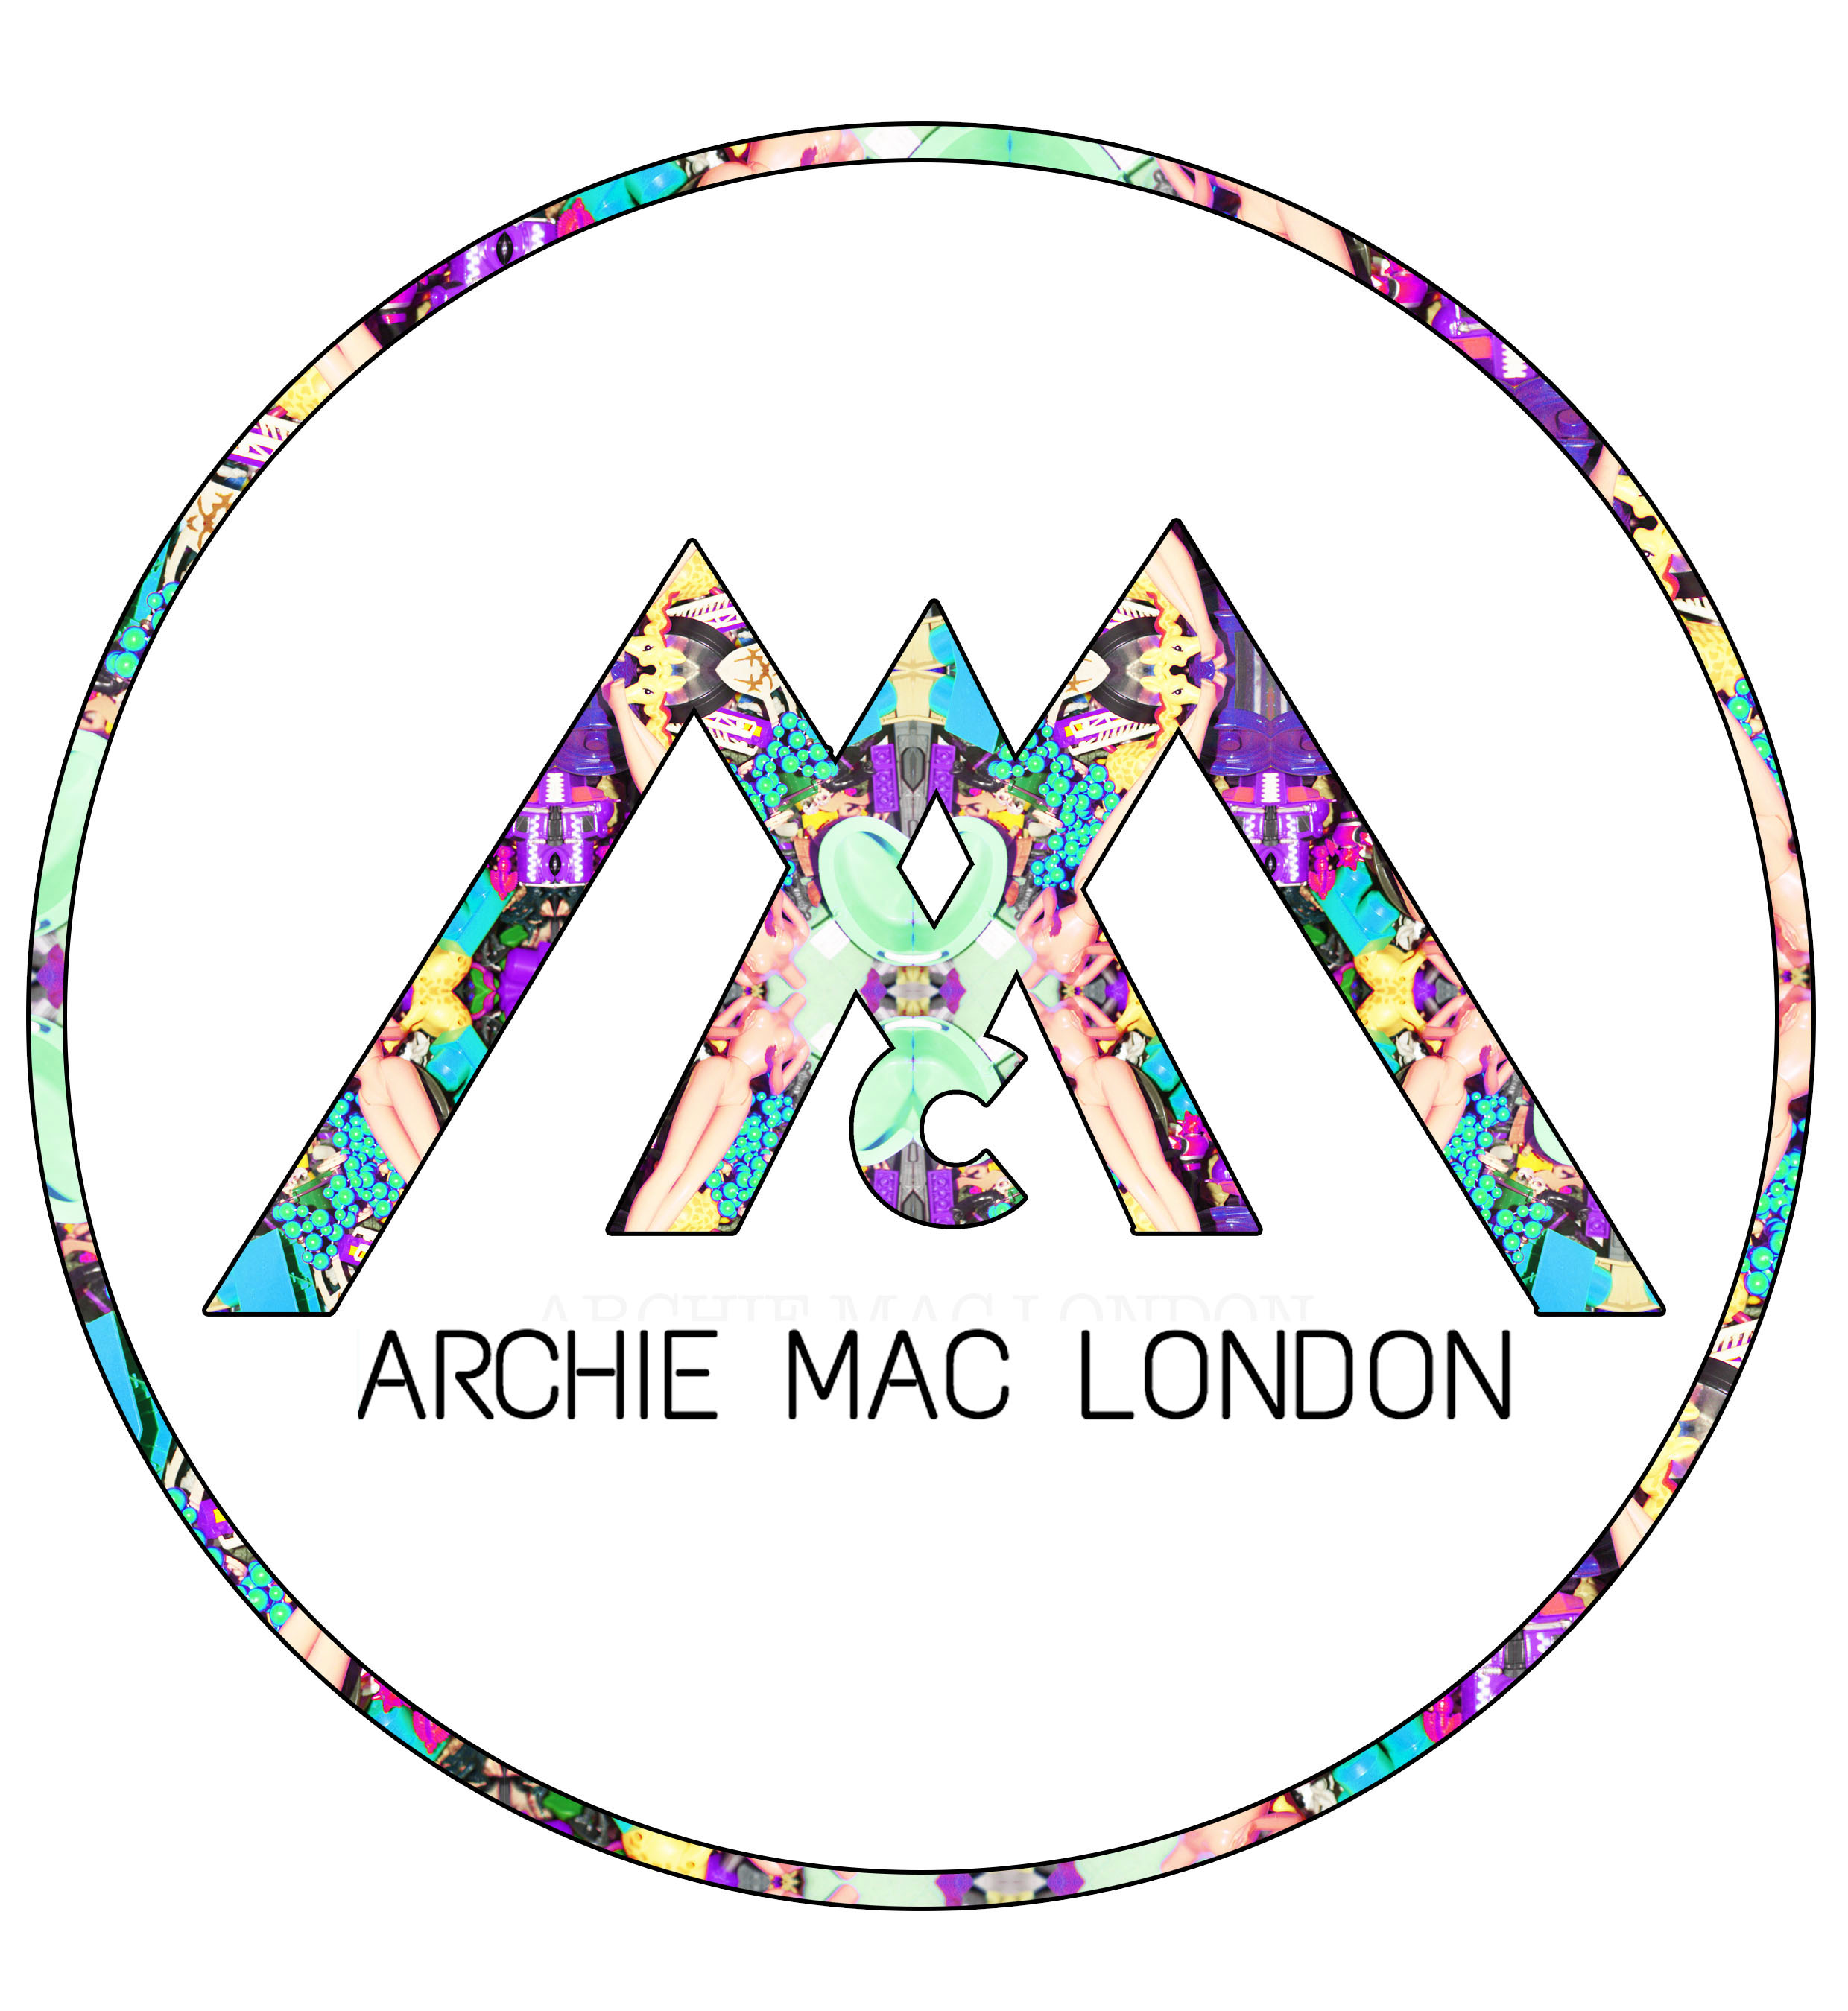 Archie Mac London